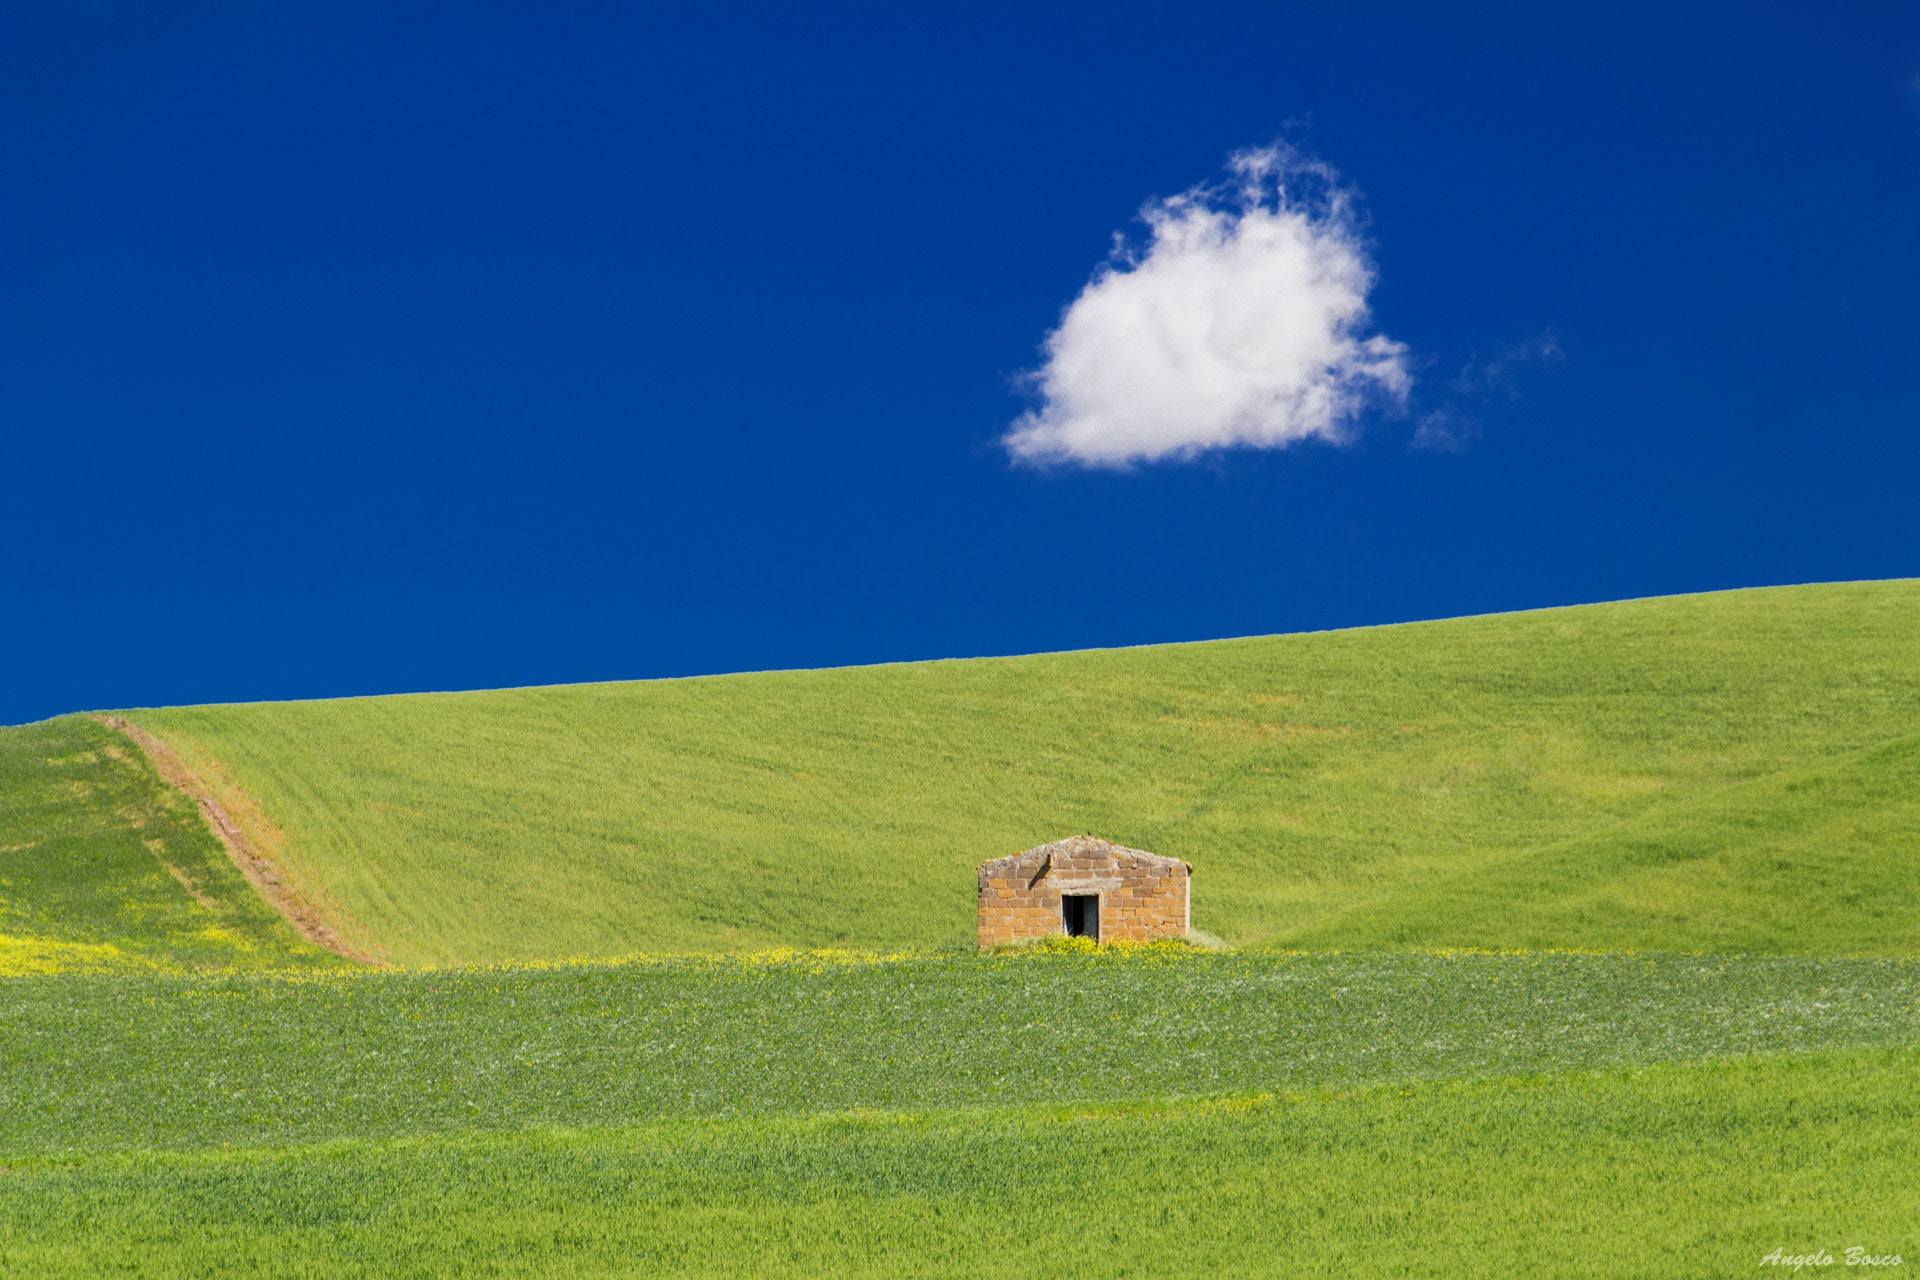 Photograph Green and Blue by Angelo Bosco on 500px